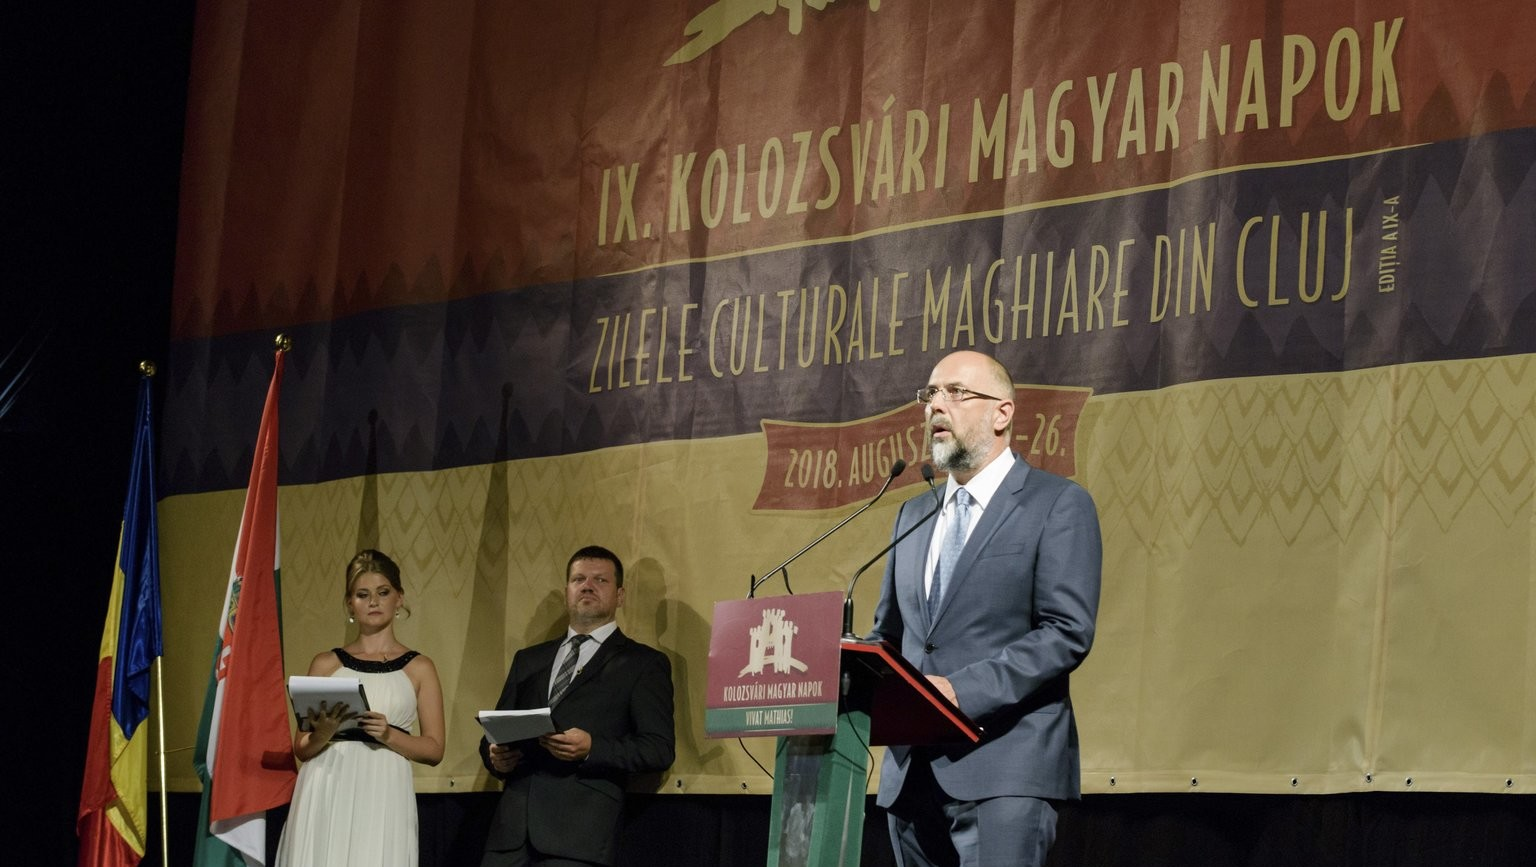 Hunor Kelemen, President of the Hungarian Democratic Union in Romania, speaks at the opening ceremony of the 9th Hungarian time of Cluj Napoca in the building of the Hungarian Opera House in Kolozsvár on August 20, 2018 (Photo: MTI / István Biró)